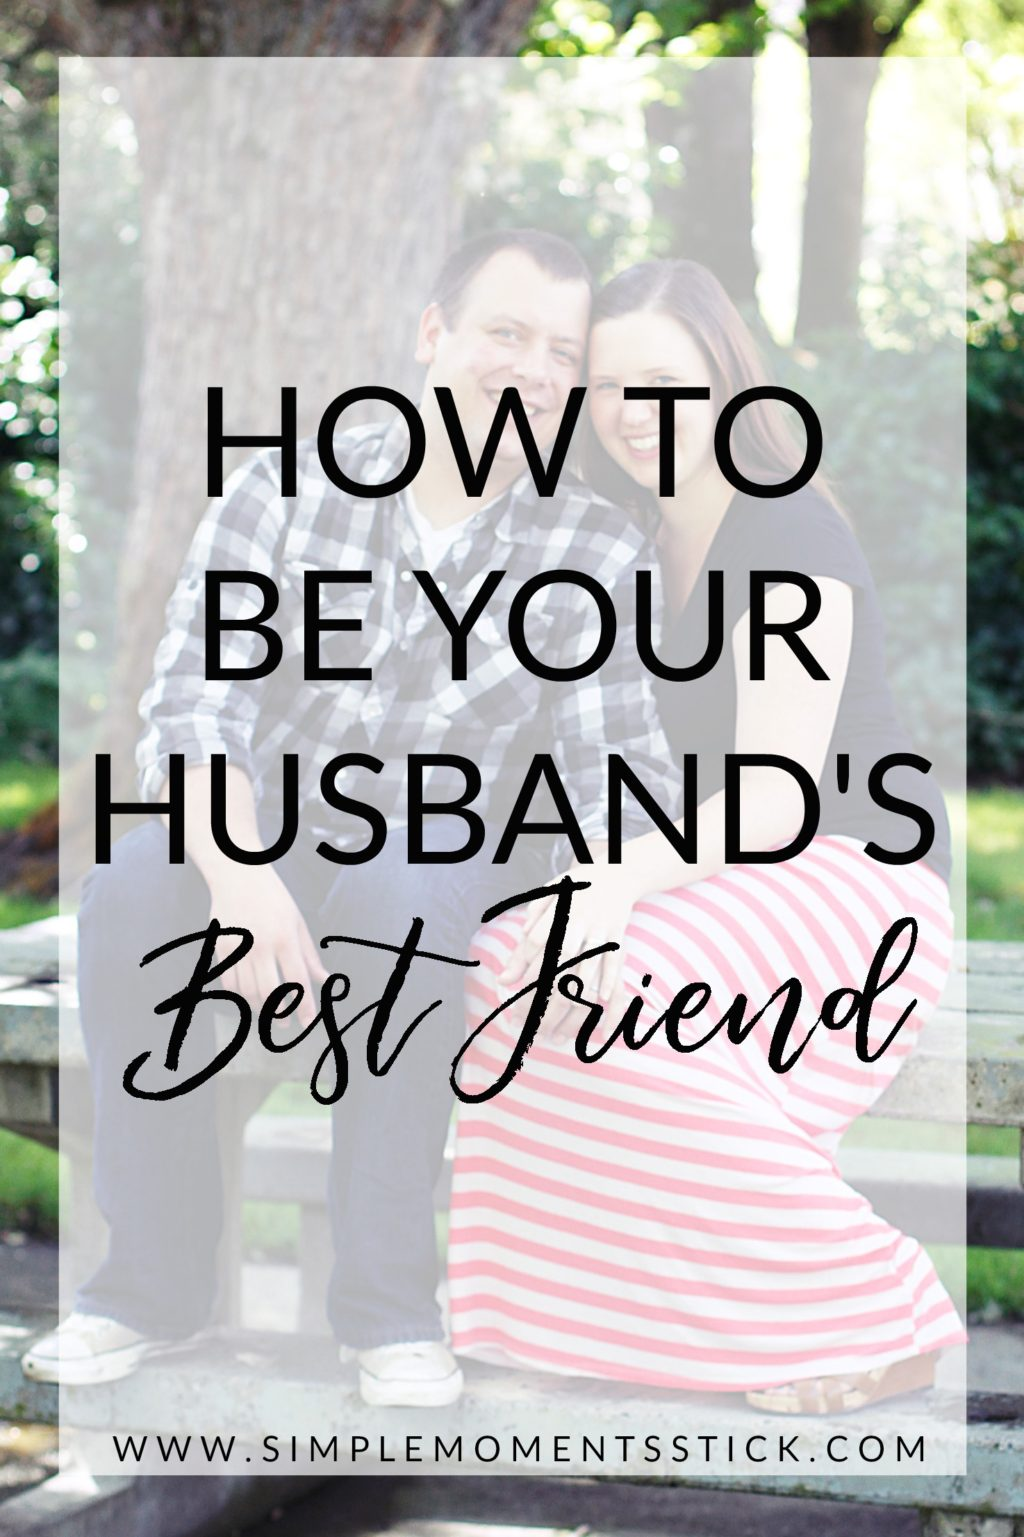 Tips on how to be your husband's best friend